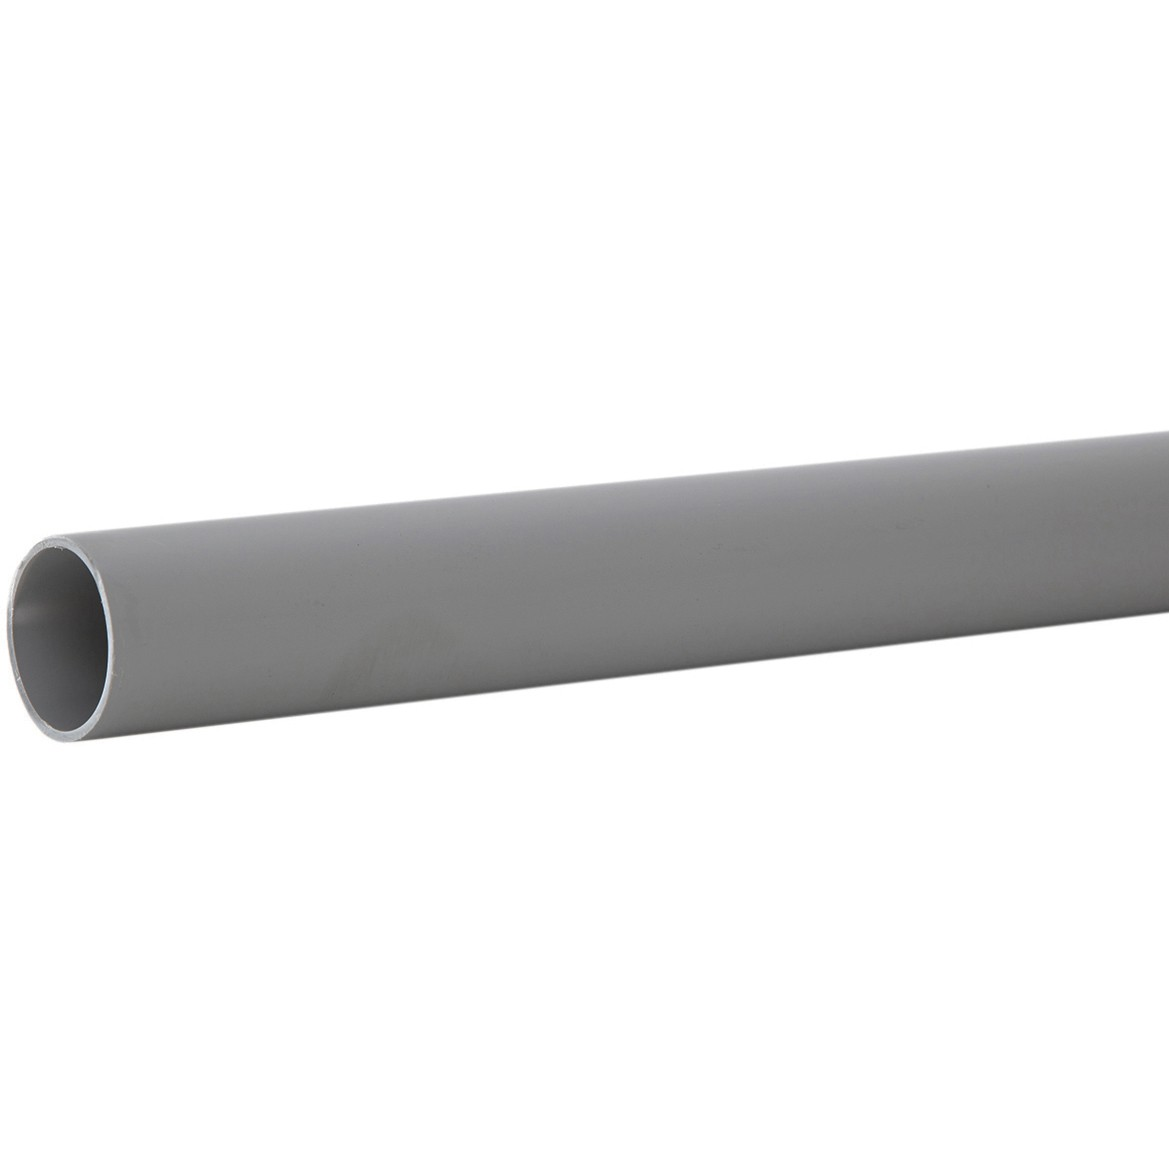 Polypipe 40mm Push Fit Waste Pipe - Grey, 3 metre